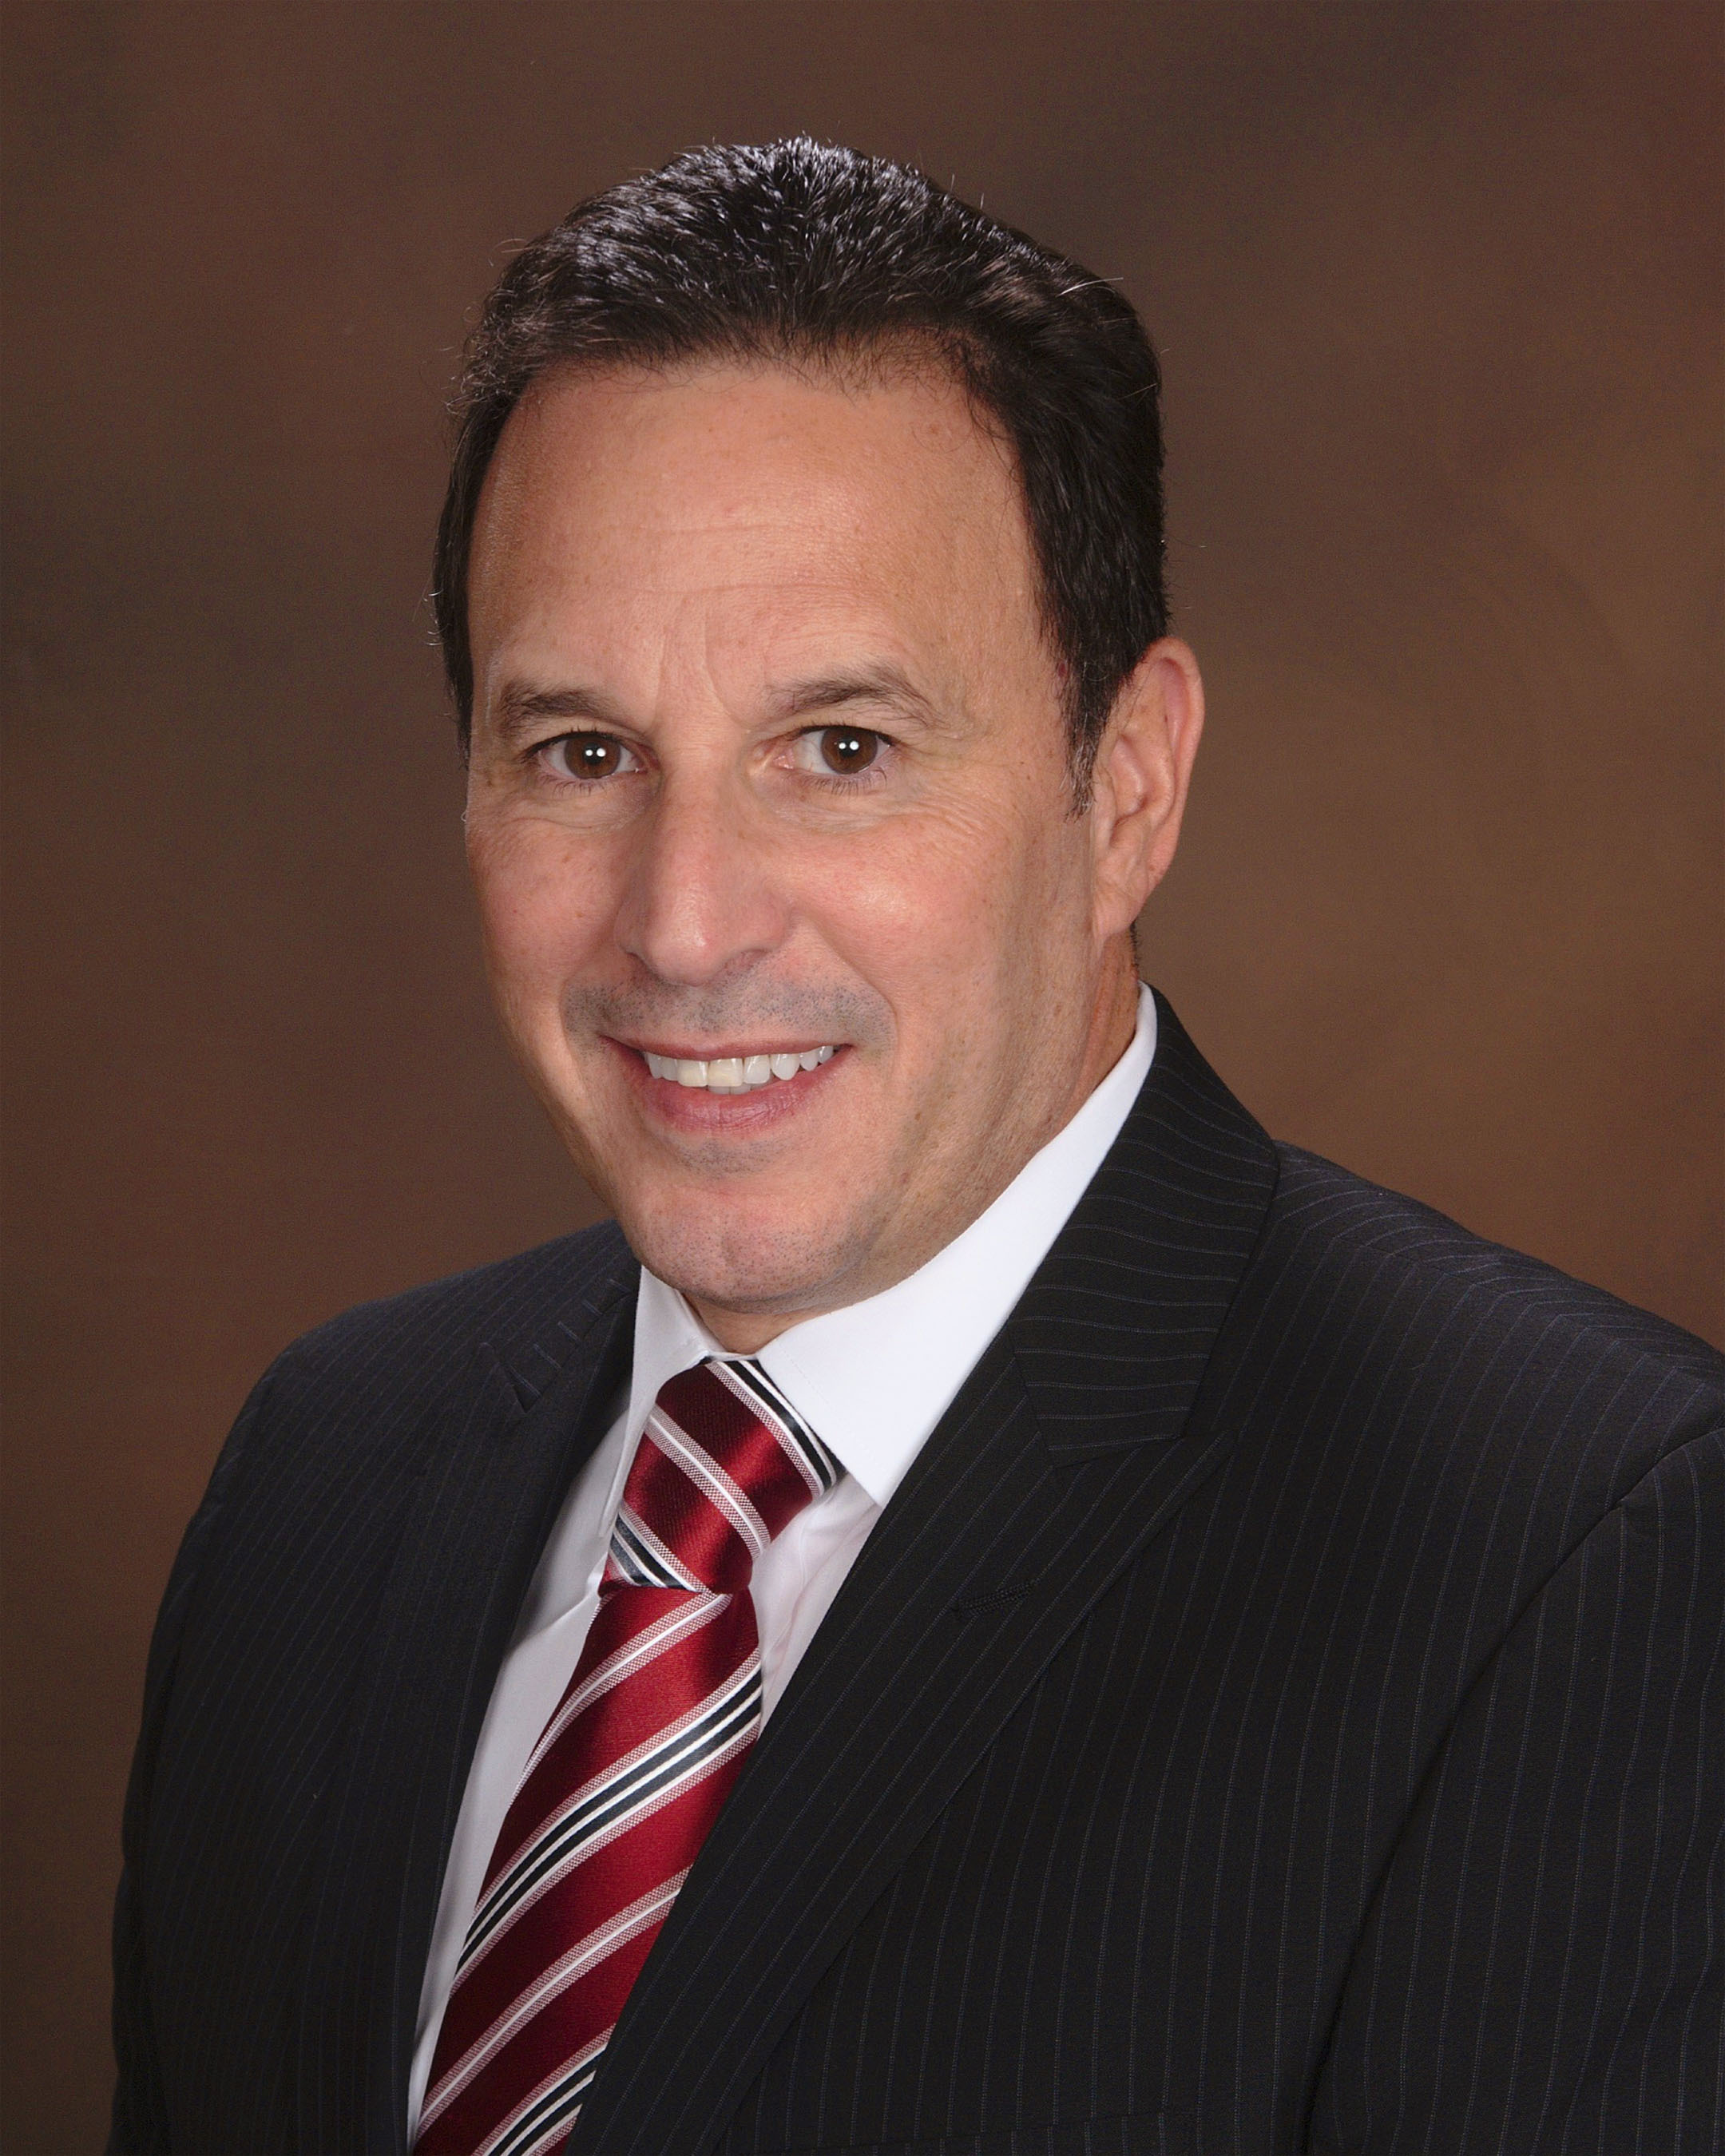 Michael Bruno, Vice President of Business Development for Smoothie King Franchises, Inc. (PRNewsFoto/Smoothie King Franchises, Inc.)